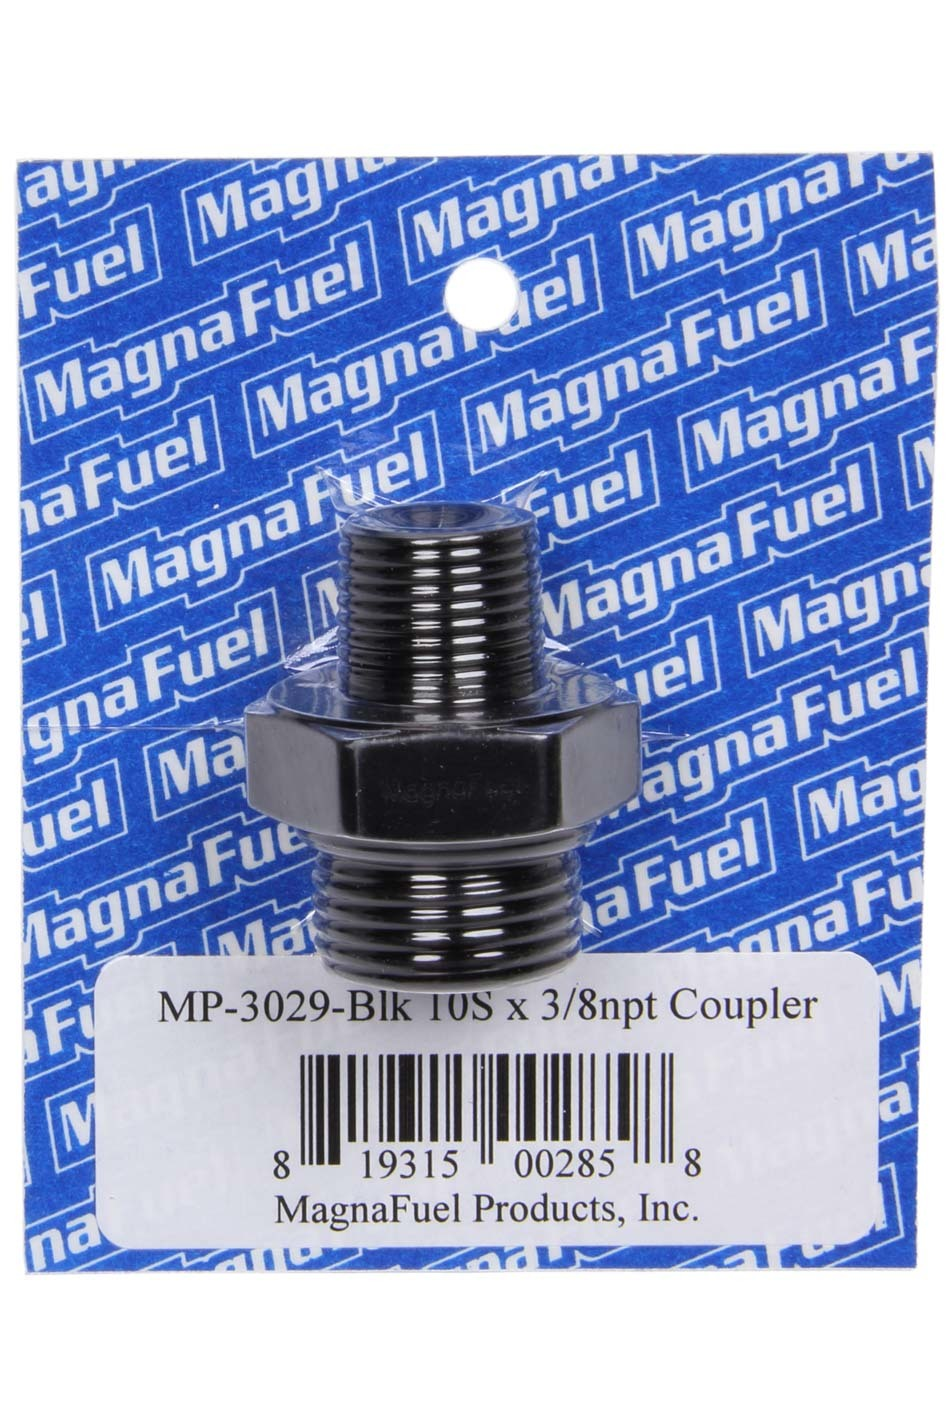 Magnafuel MP-3029-BLK Fitting, Adapter, Straight, 10 AN Male O-Ring to 3/8 in NPT Male, Aluminum, Black Anodized, Each